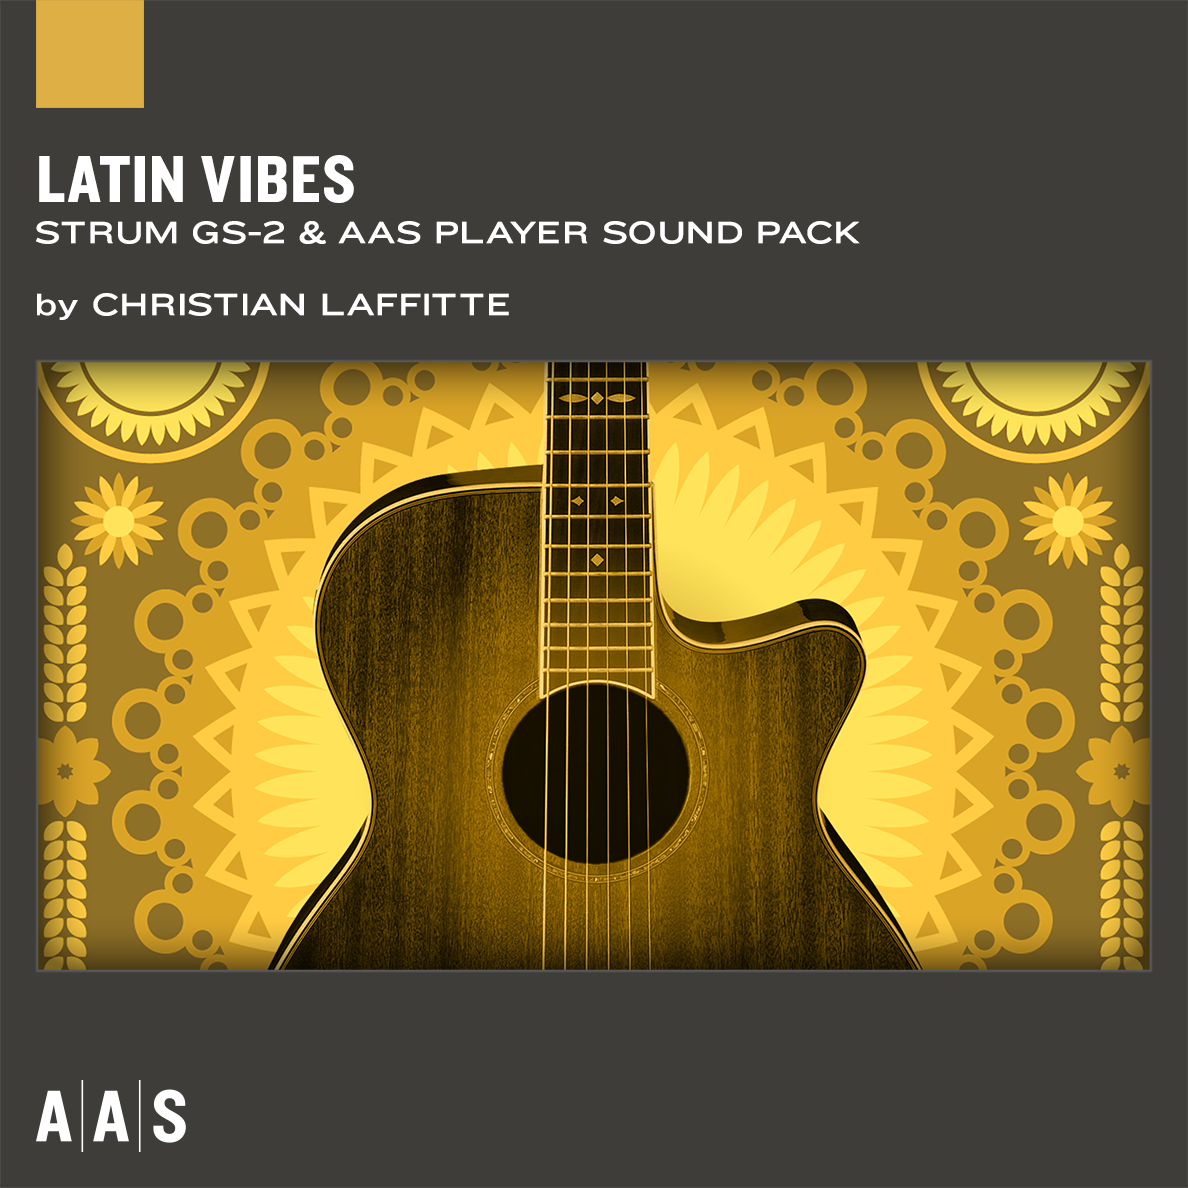 STRUM GS Sound Banks: Latin Vibes